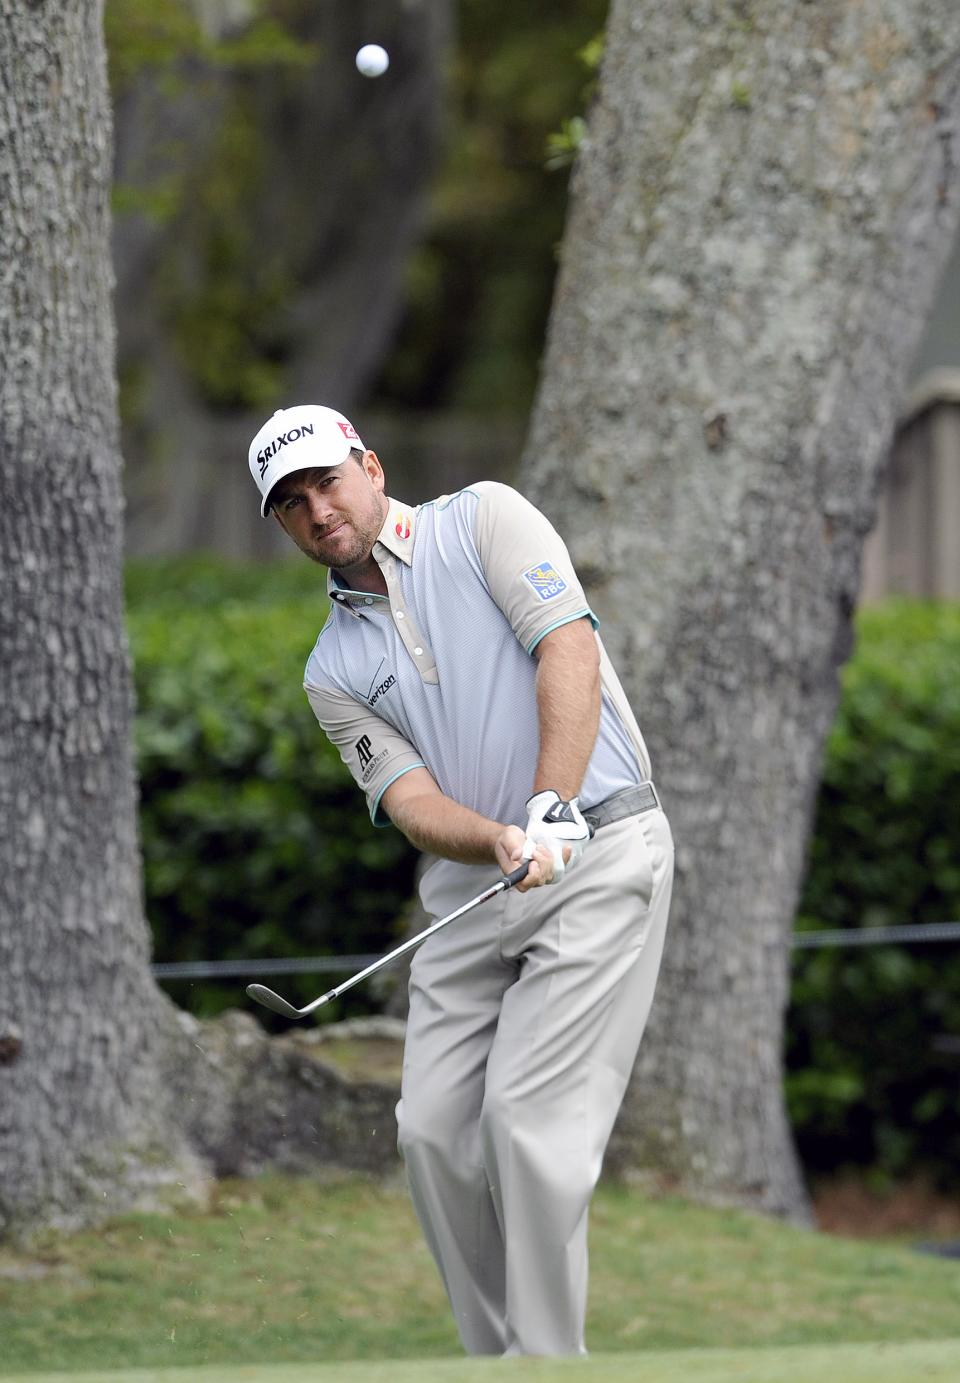 Graeme McDowell, of Northern Ireland, chips onto the second green during the final round of the RBC Heritage golf tournament in Hilton Head Island, S.C., Sunday, April 21, 2013. (AP Photo/Stephen Morton)